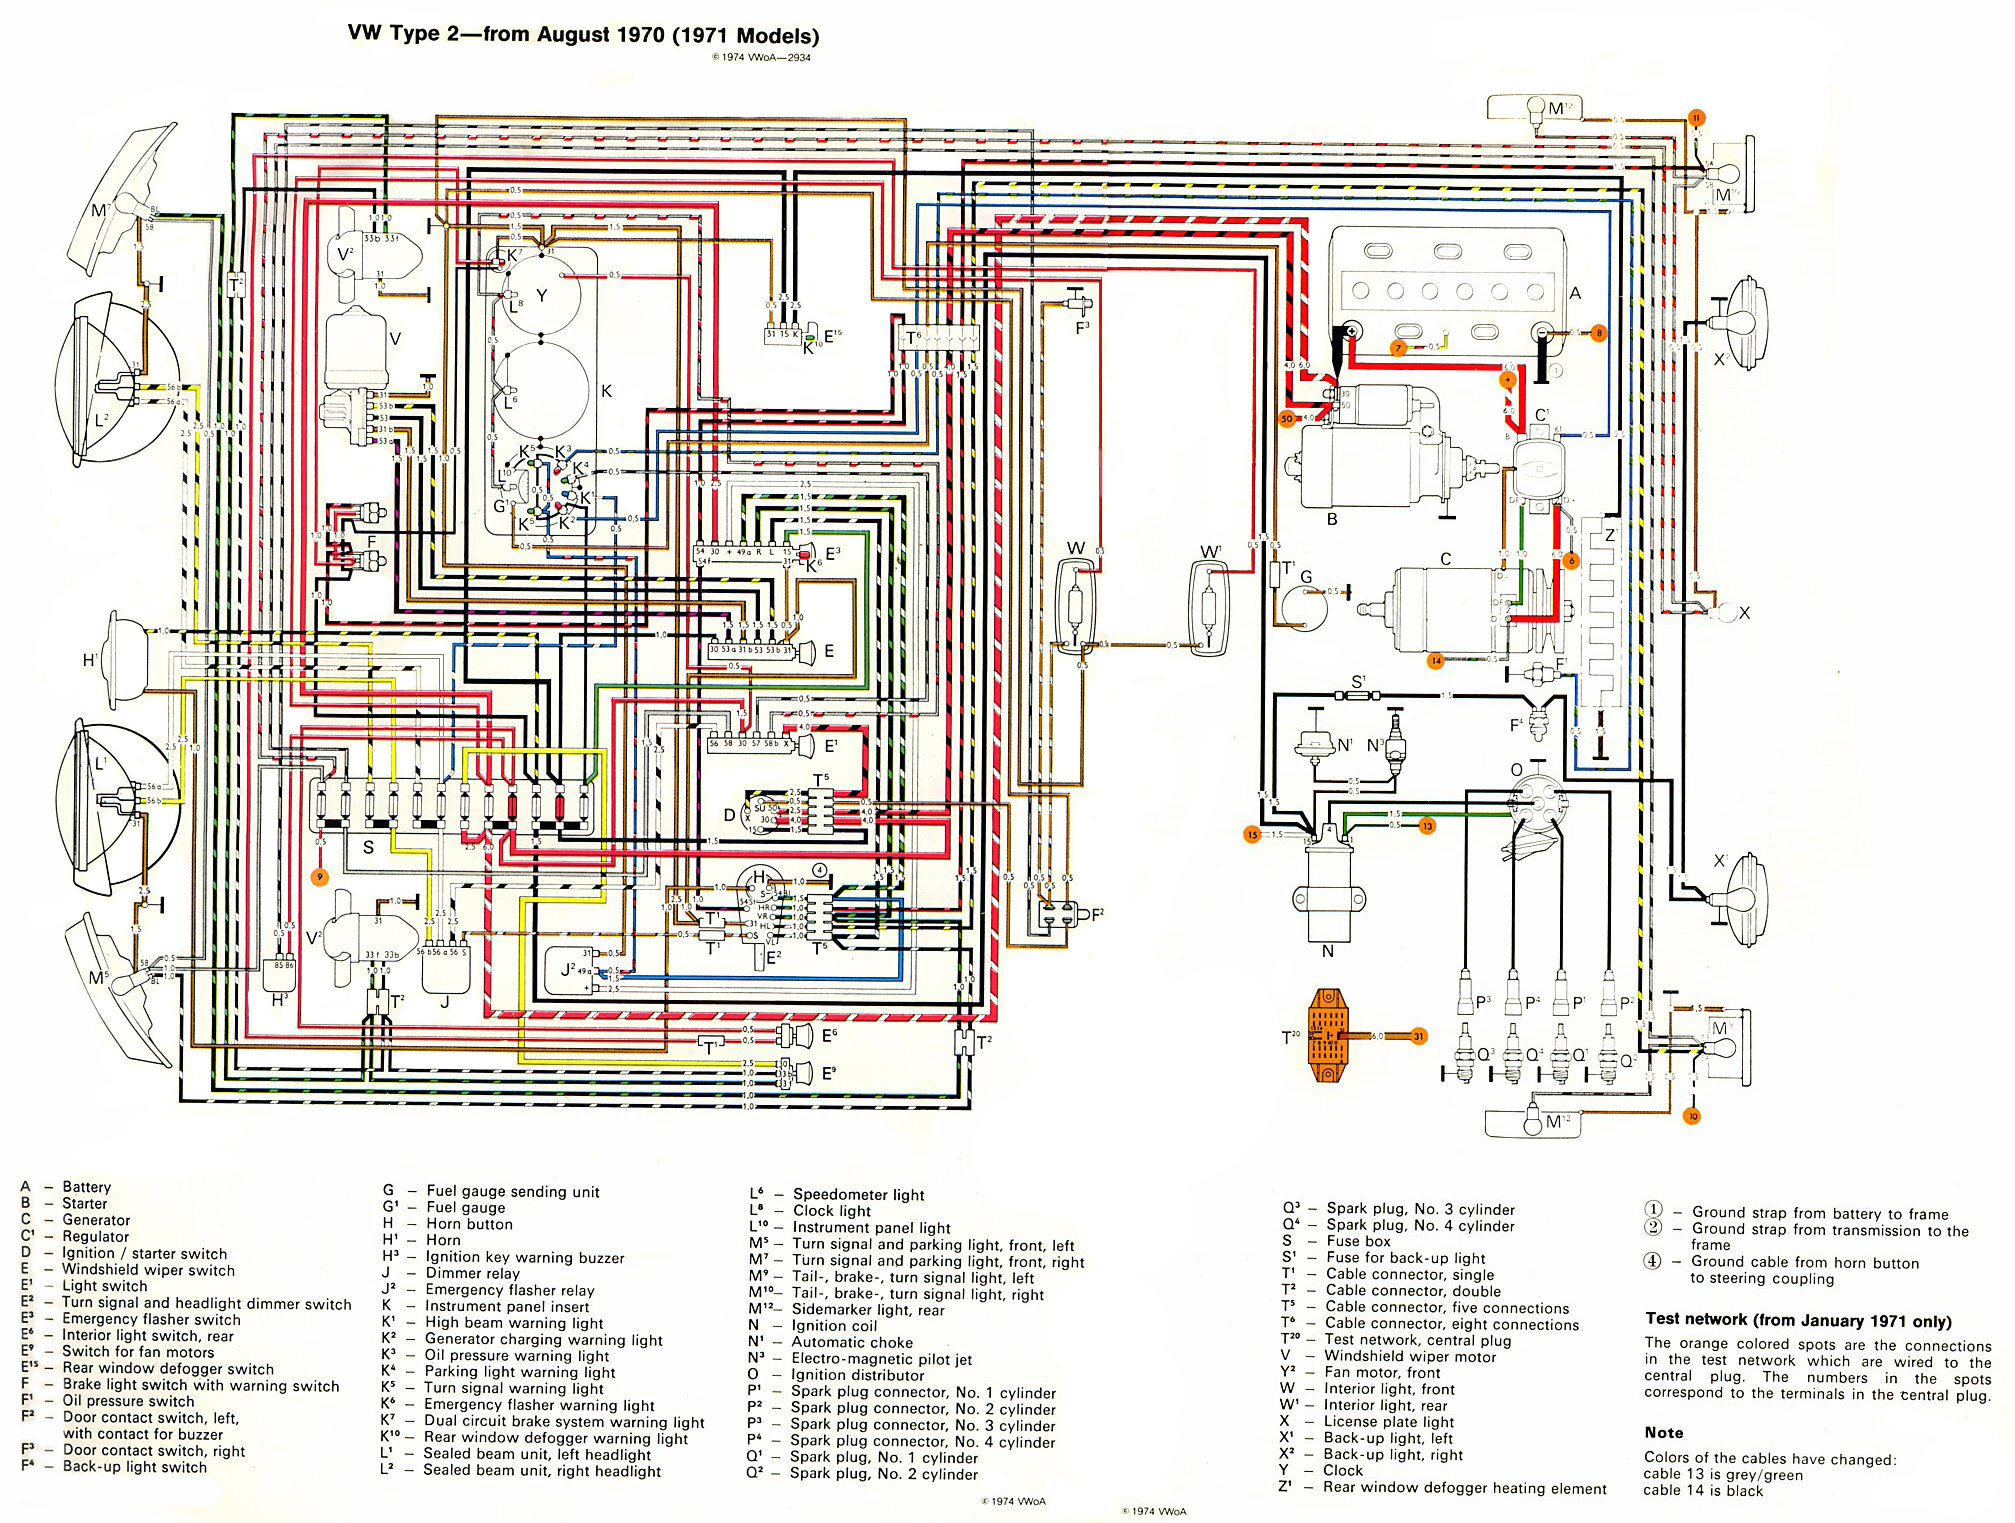 baybus_71_fixed wiring schematic diagram carrier package unit wiring diagram vw wiring diagram symbols at crackthecode.co